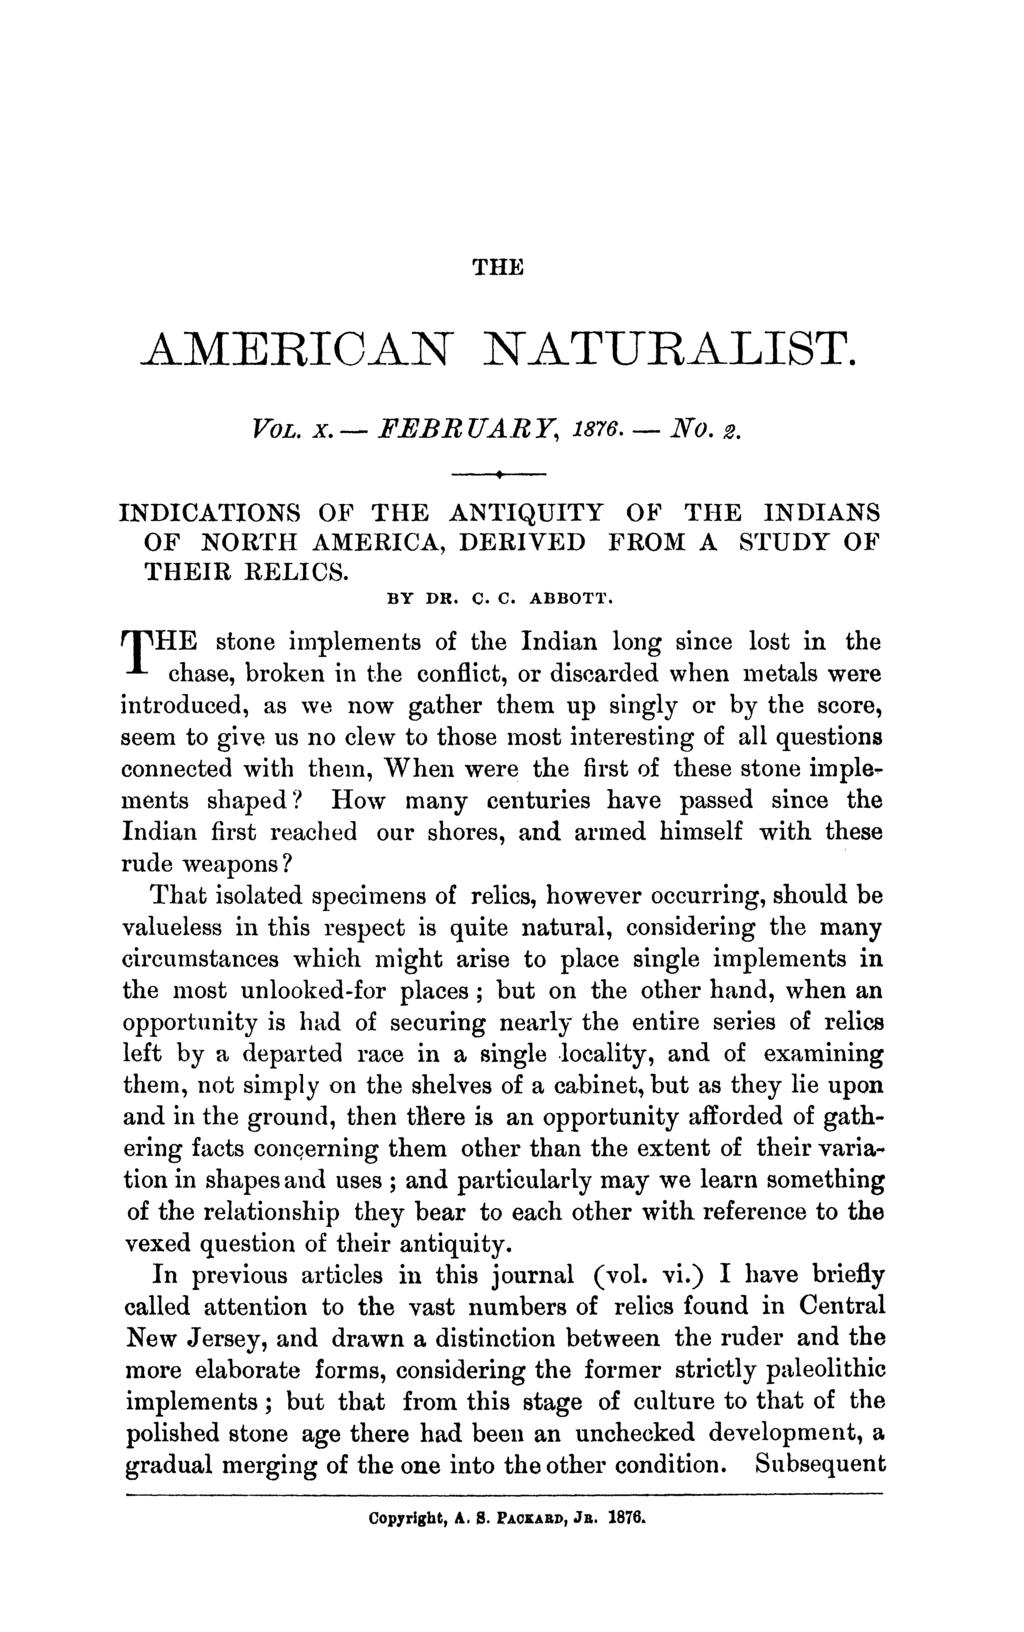 THE AMERICAN NATURALIST. VOL. x. - FEBB UARY, 1876. - No. 2. INDICATIONS OF THE ANTIQUITY OF THE INDIANS OF NORTH AMERICA, DERIVED FROM A STUDY OF THEIR RELICS. BY DR. C. C. ABBOTT.